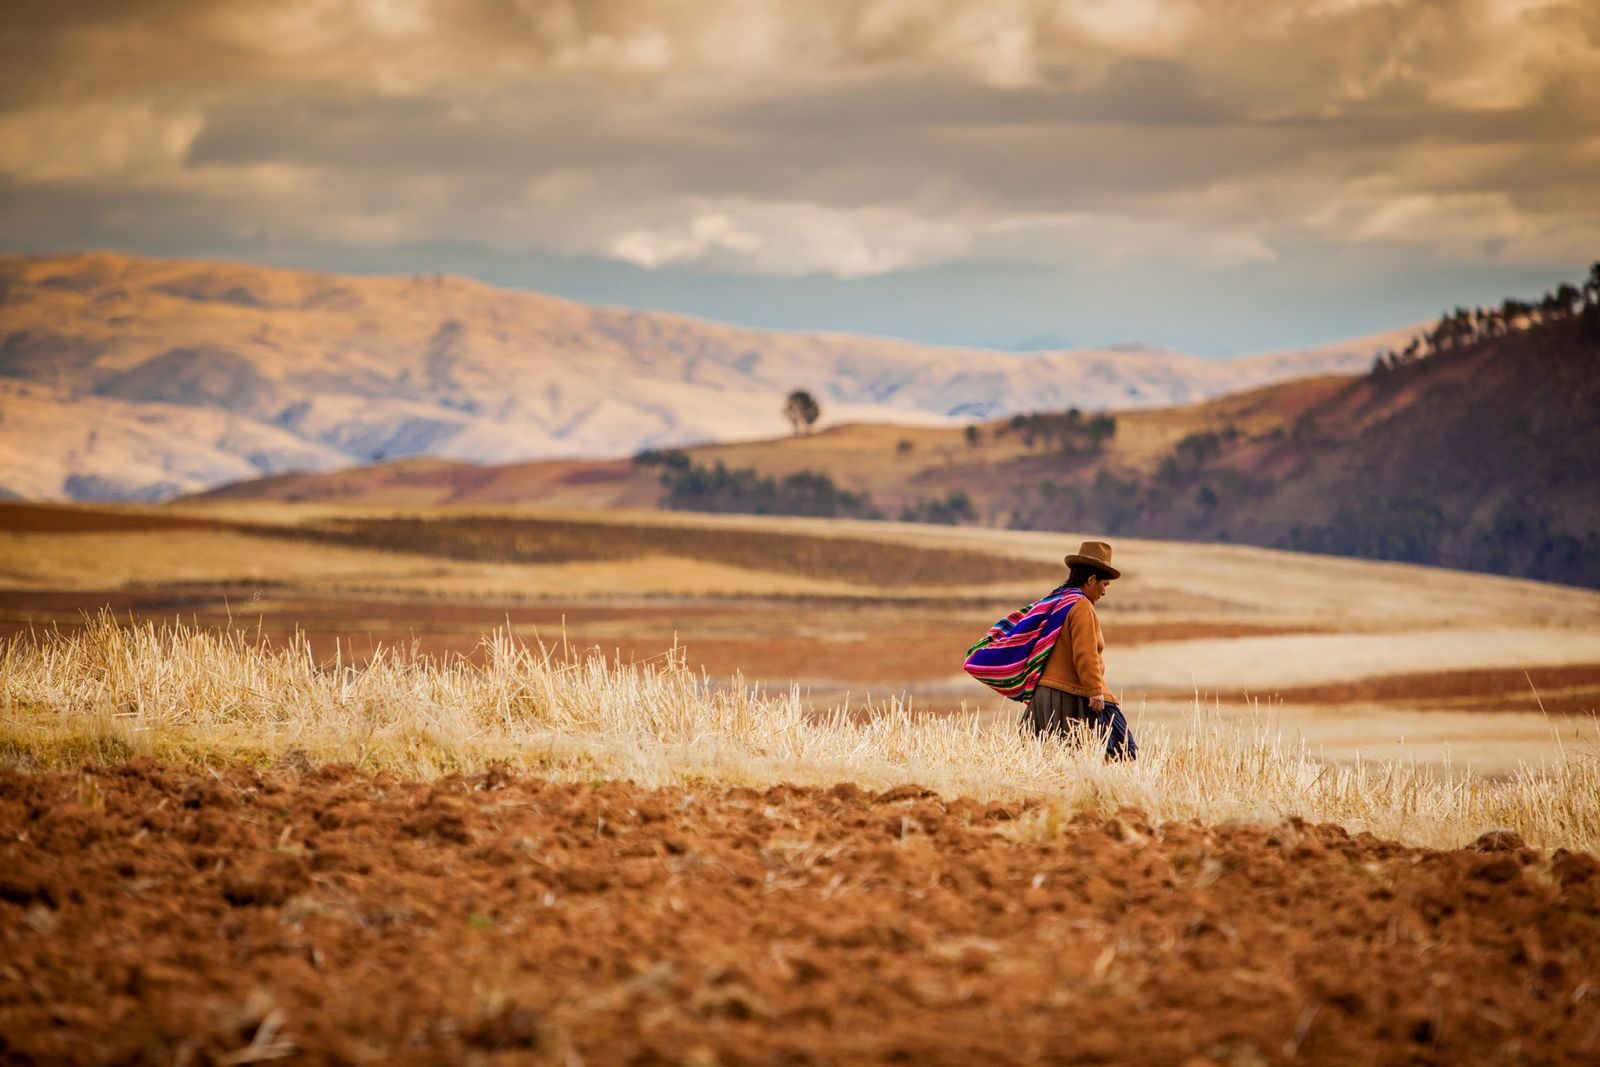 From the Andes to the Amazon: 14 ways to experience Peru